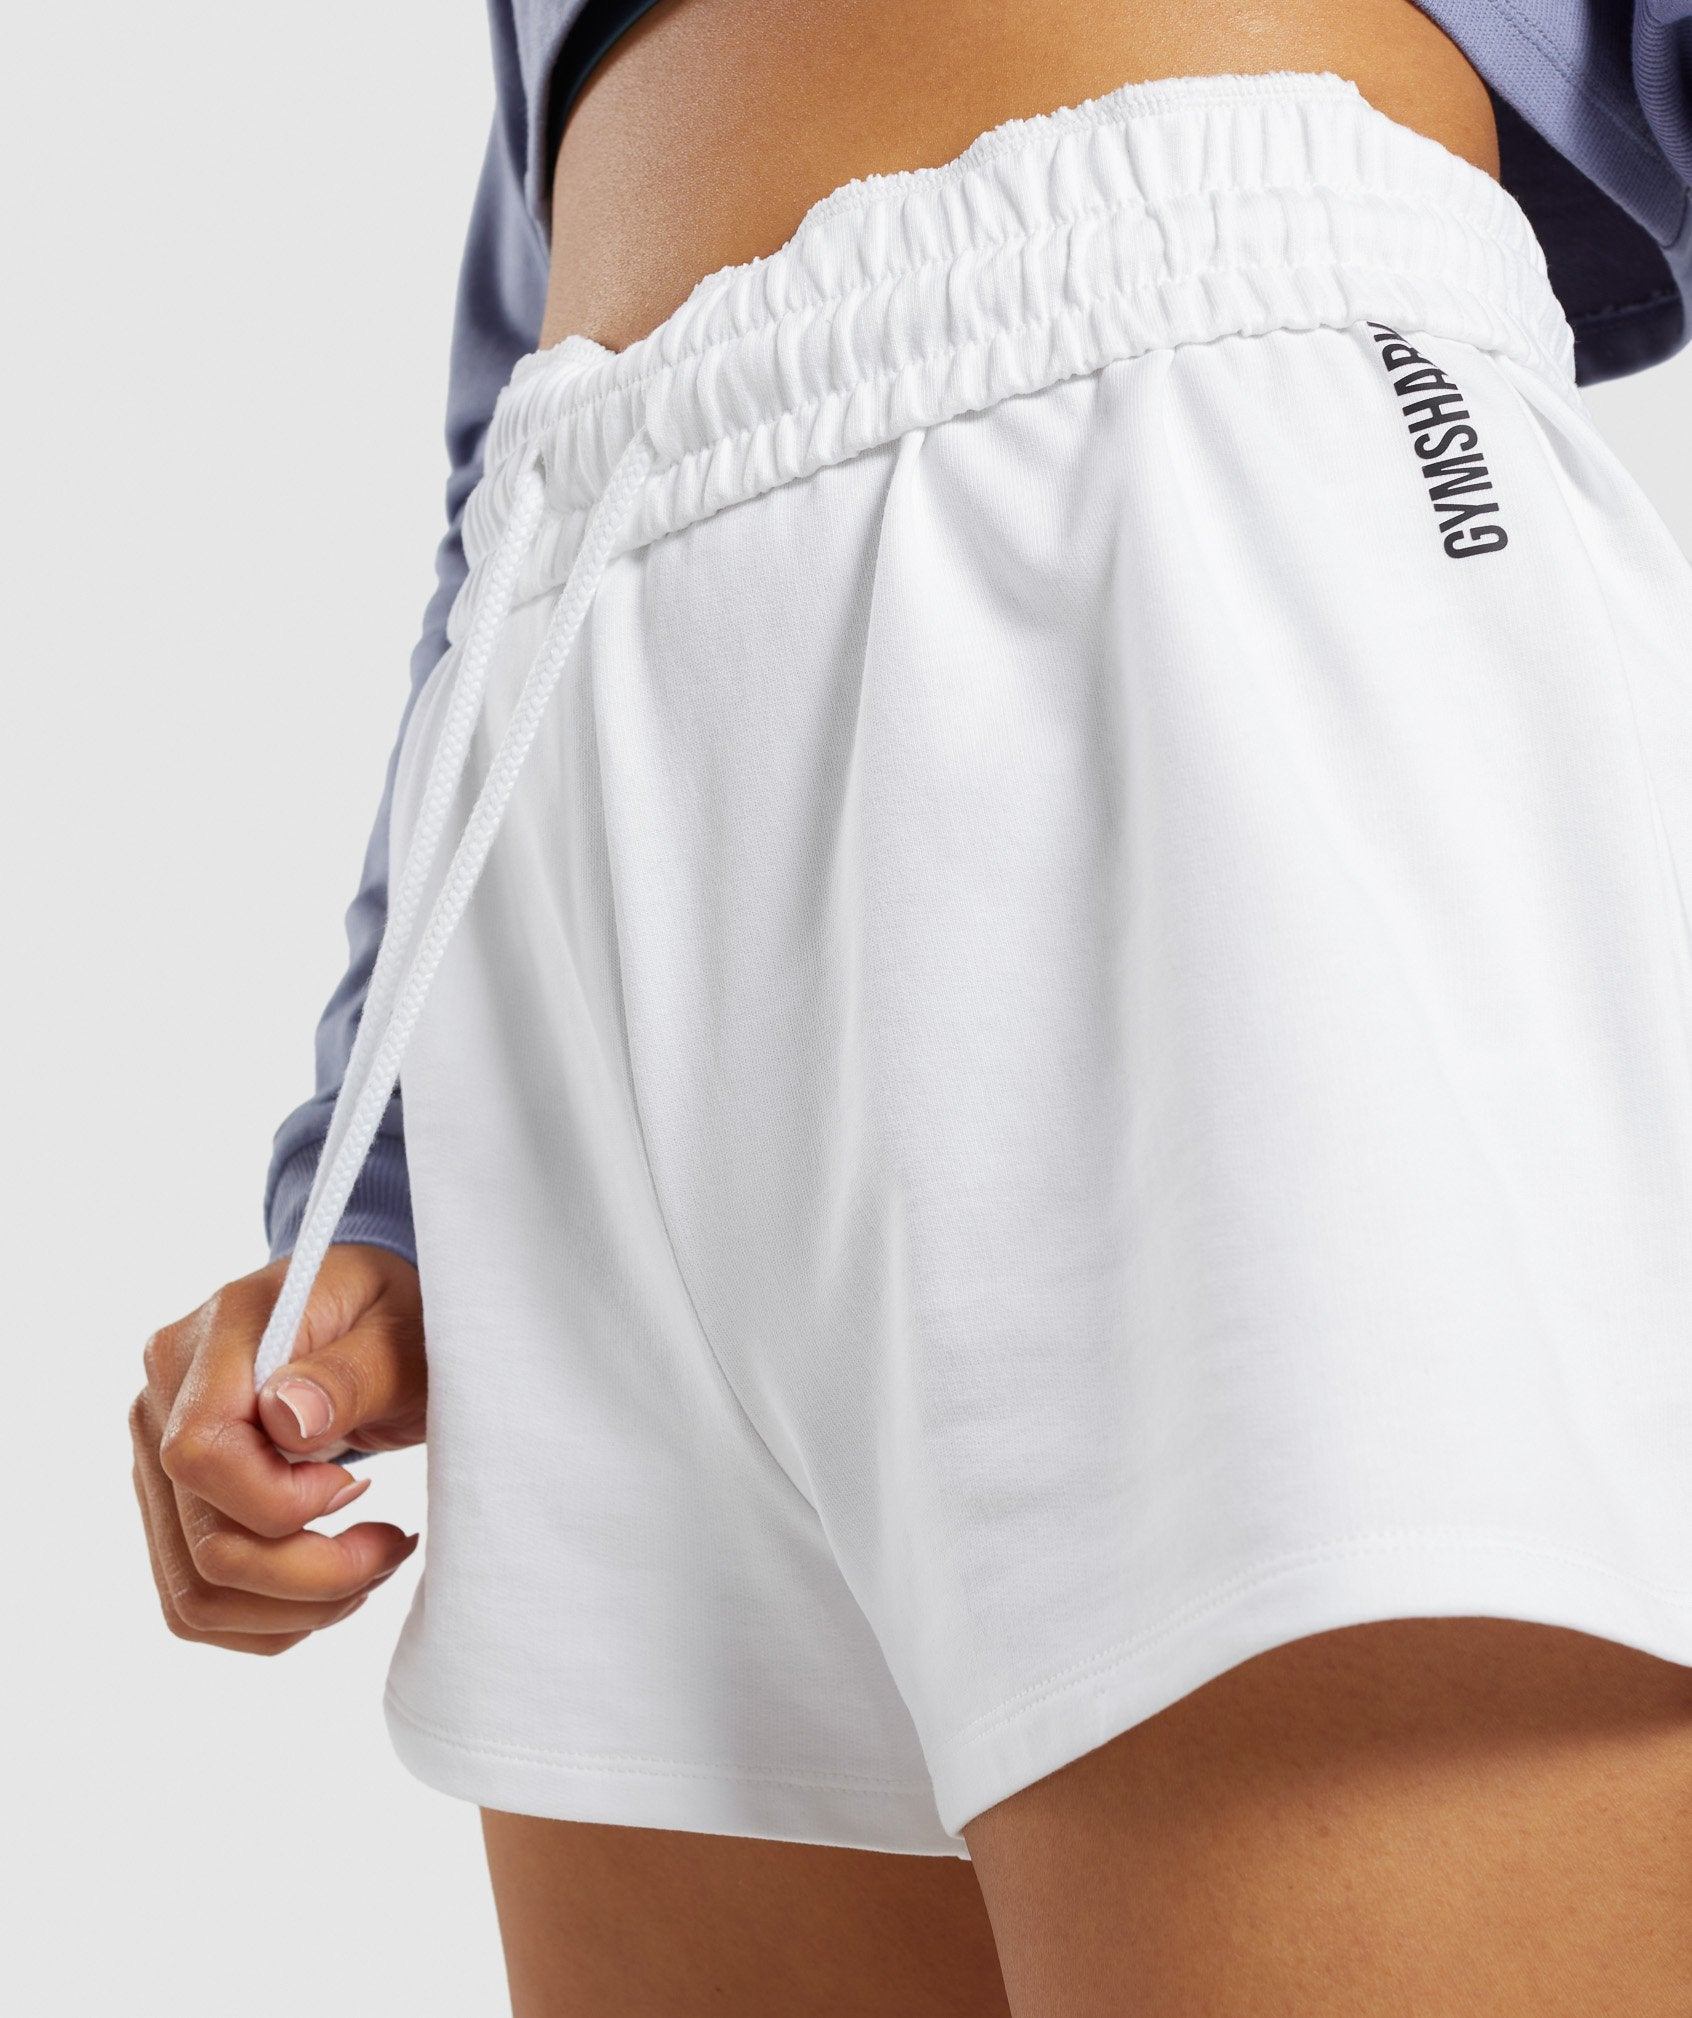 Classier: Buy Gymshark Slim Fit Throw On Shorts - White - Gymshark